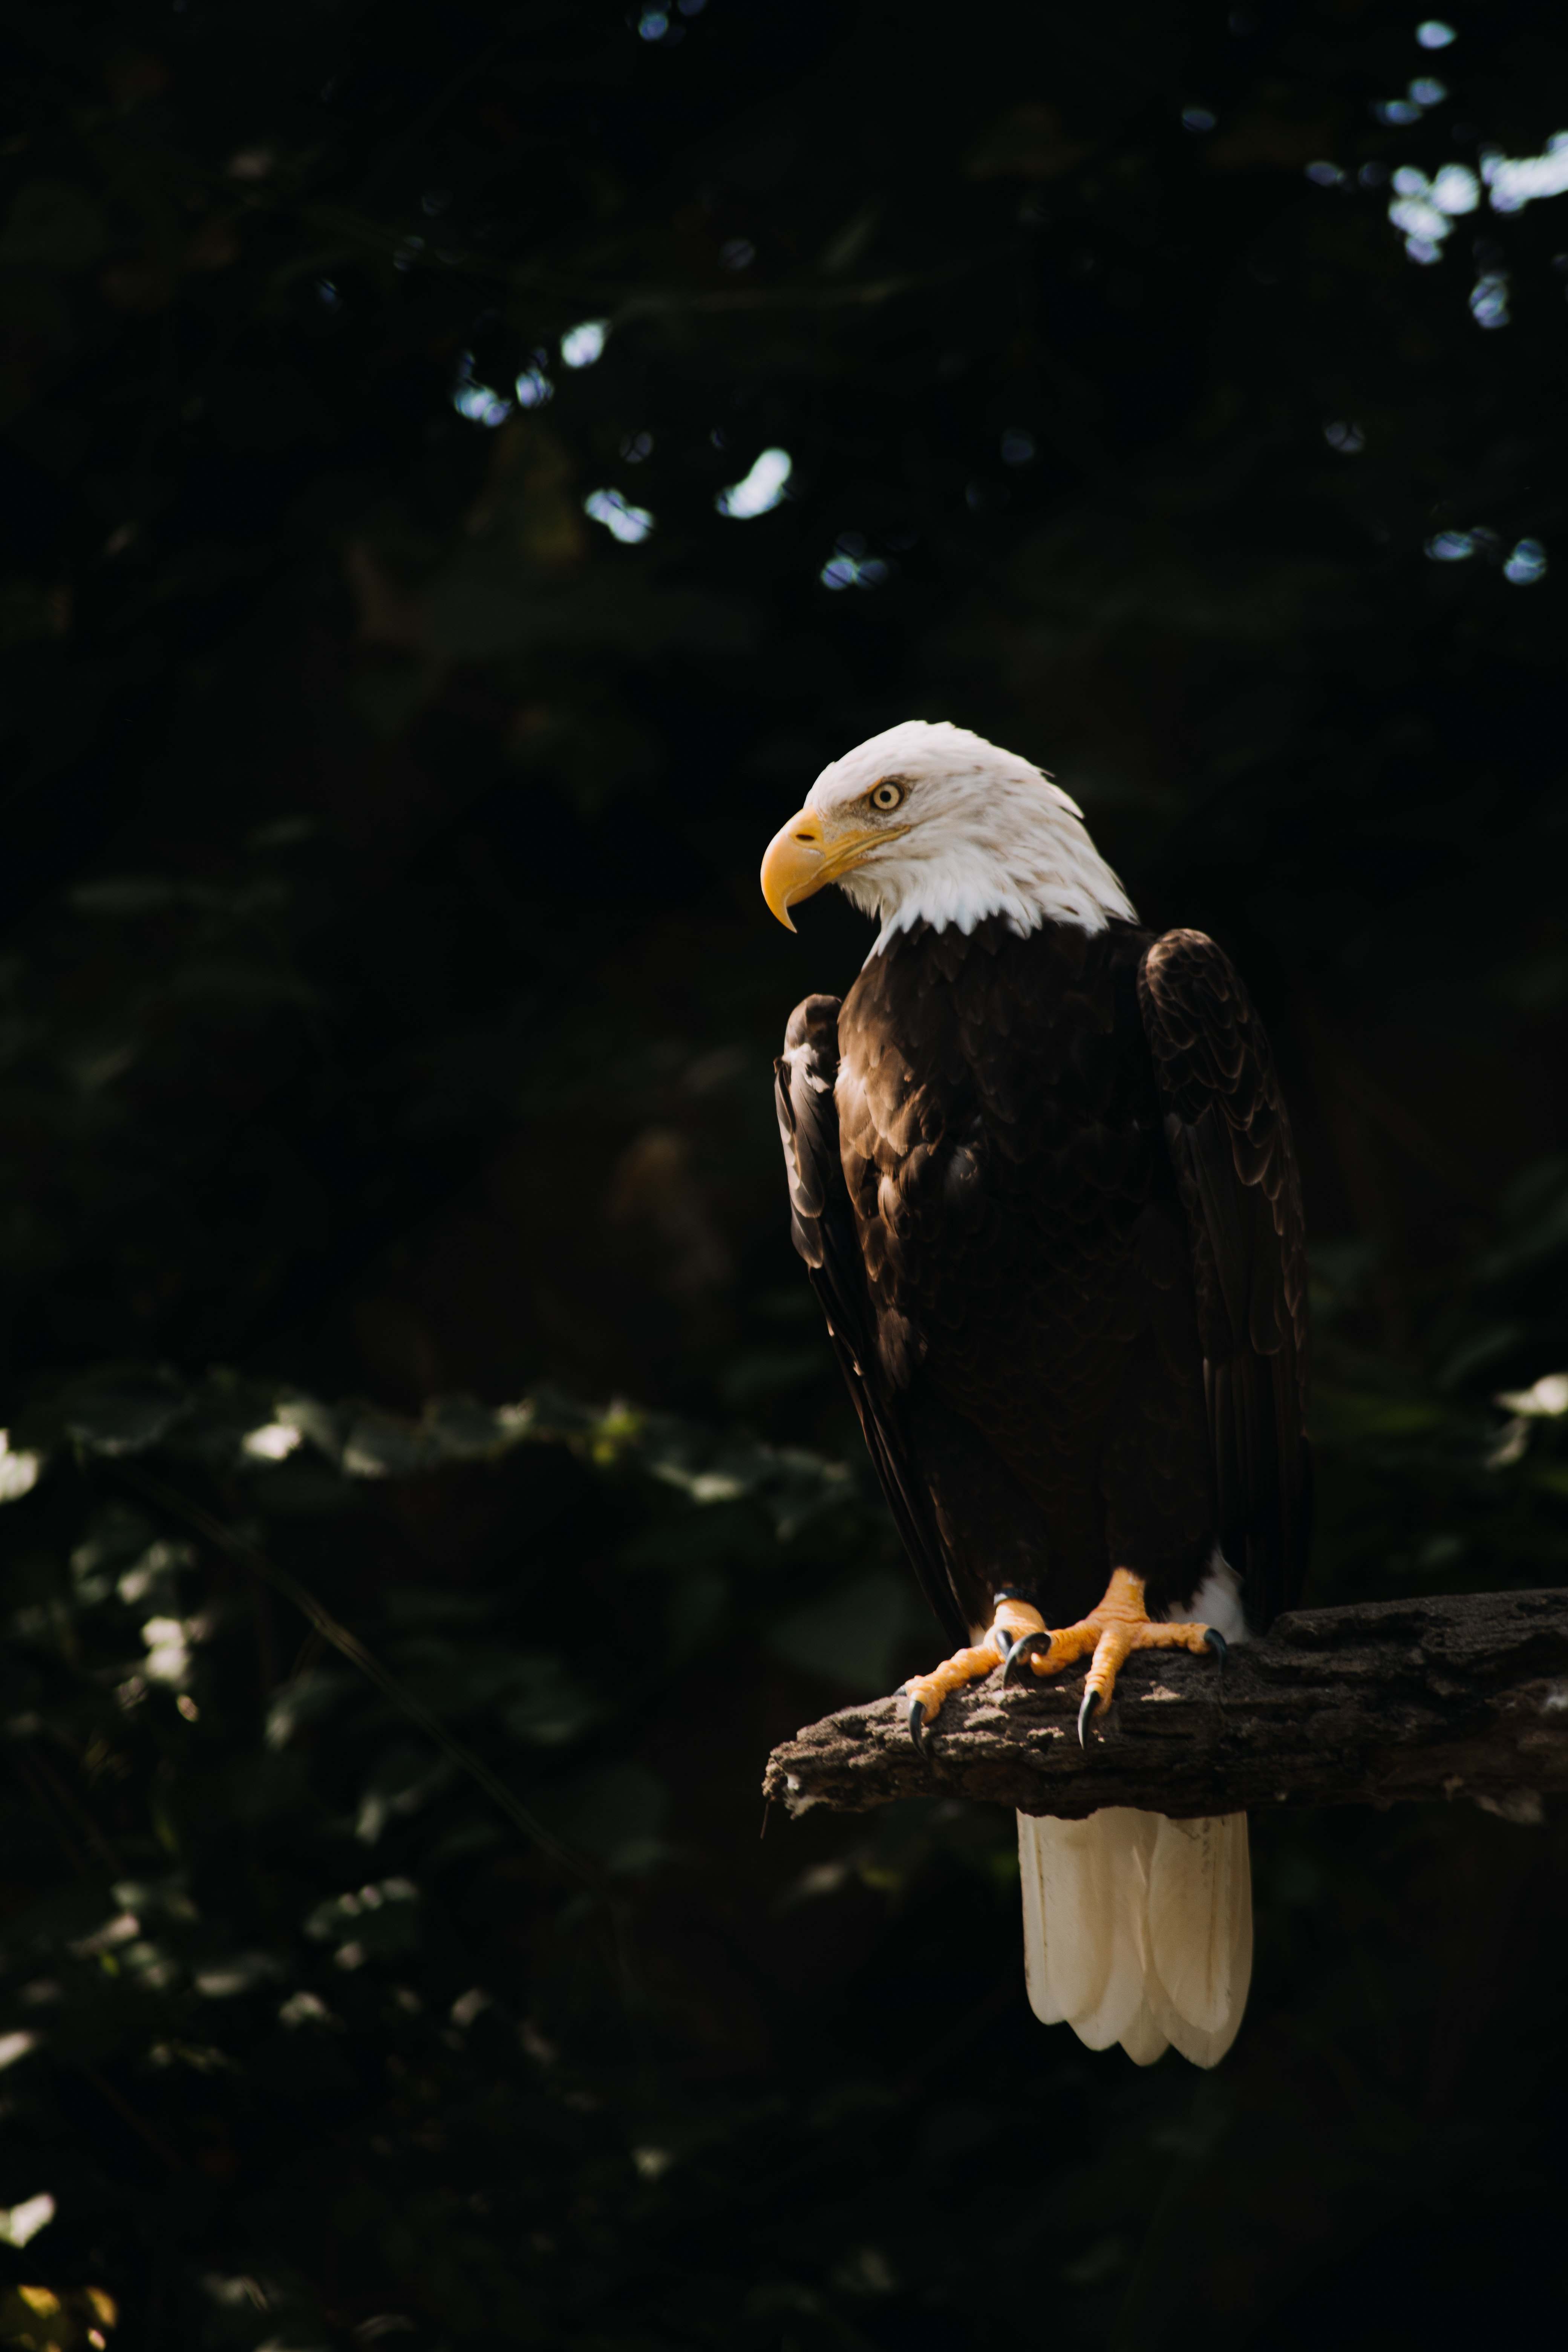 107914 download wallpaper Animals, Bald Eagle, White-Headed Eagle, Eagle, Bird, Predator, Wood, Tree screensavers and pictures for free